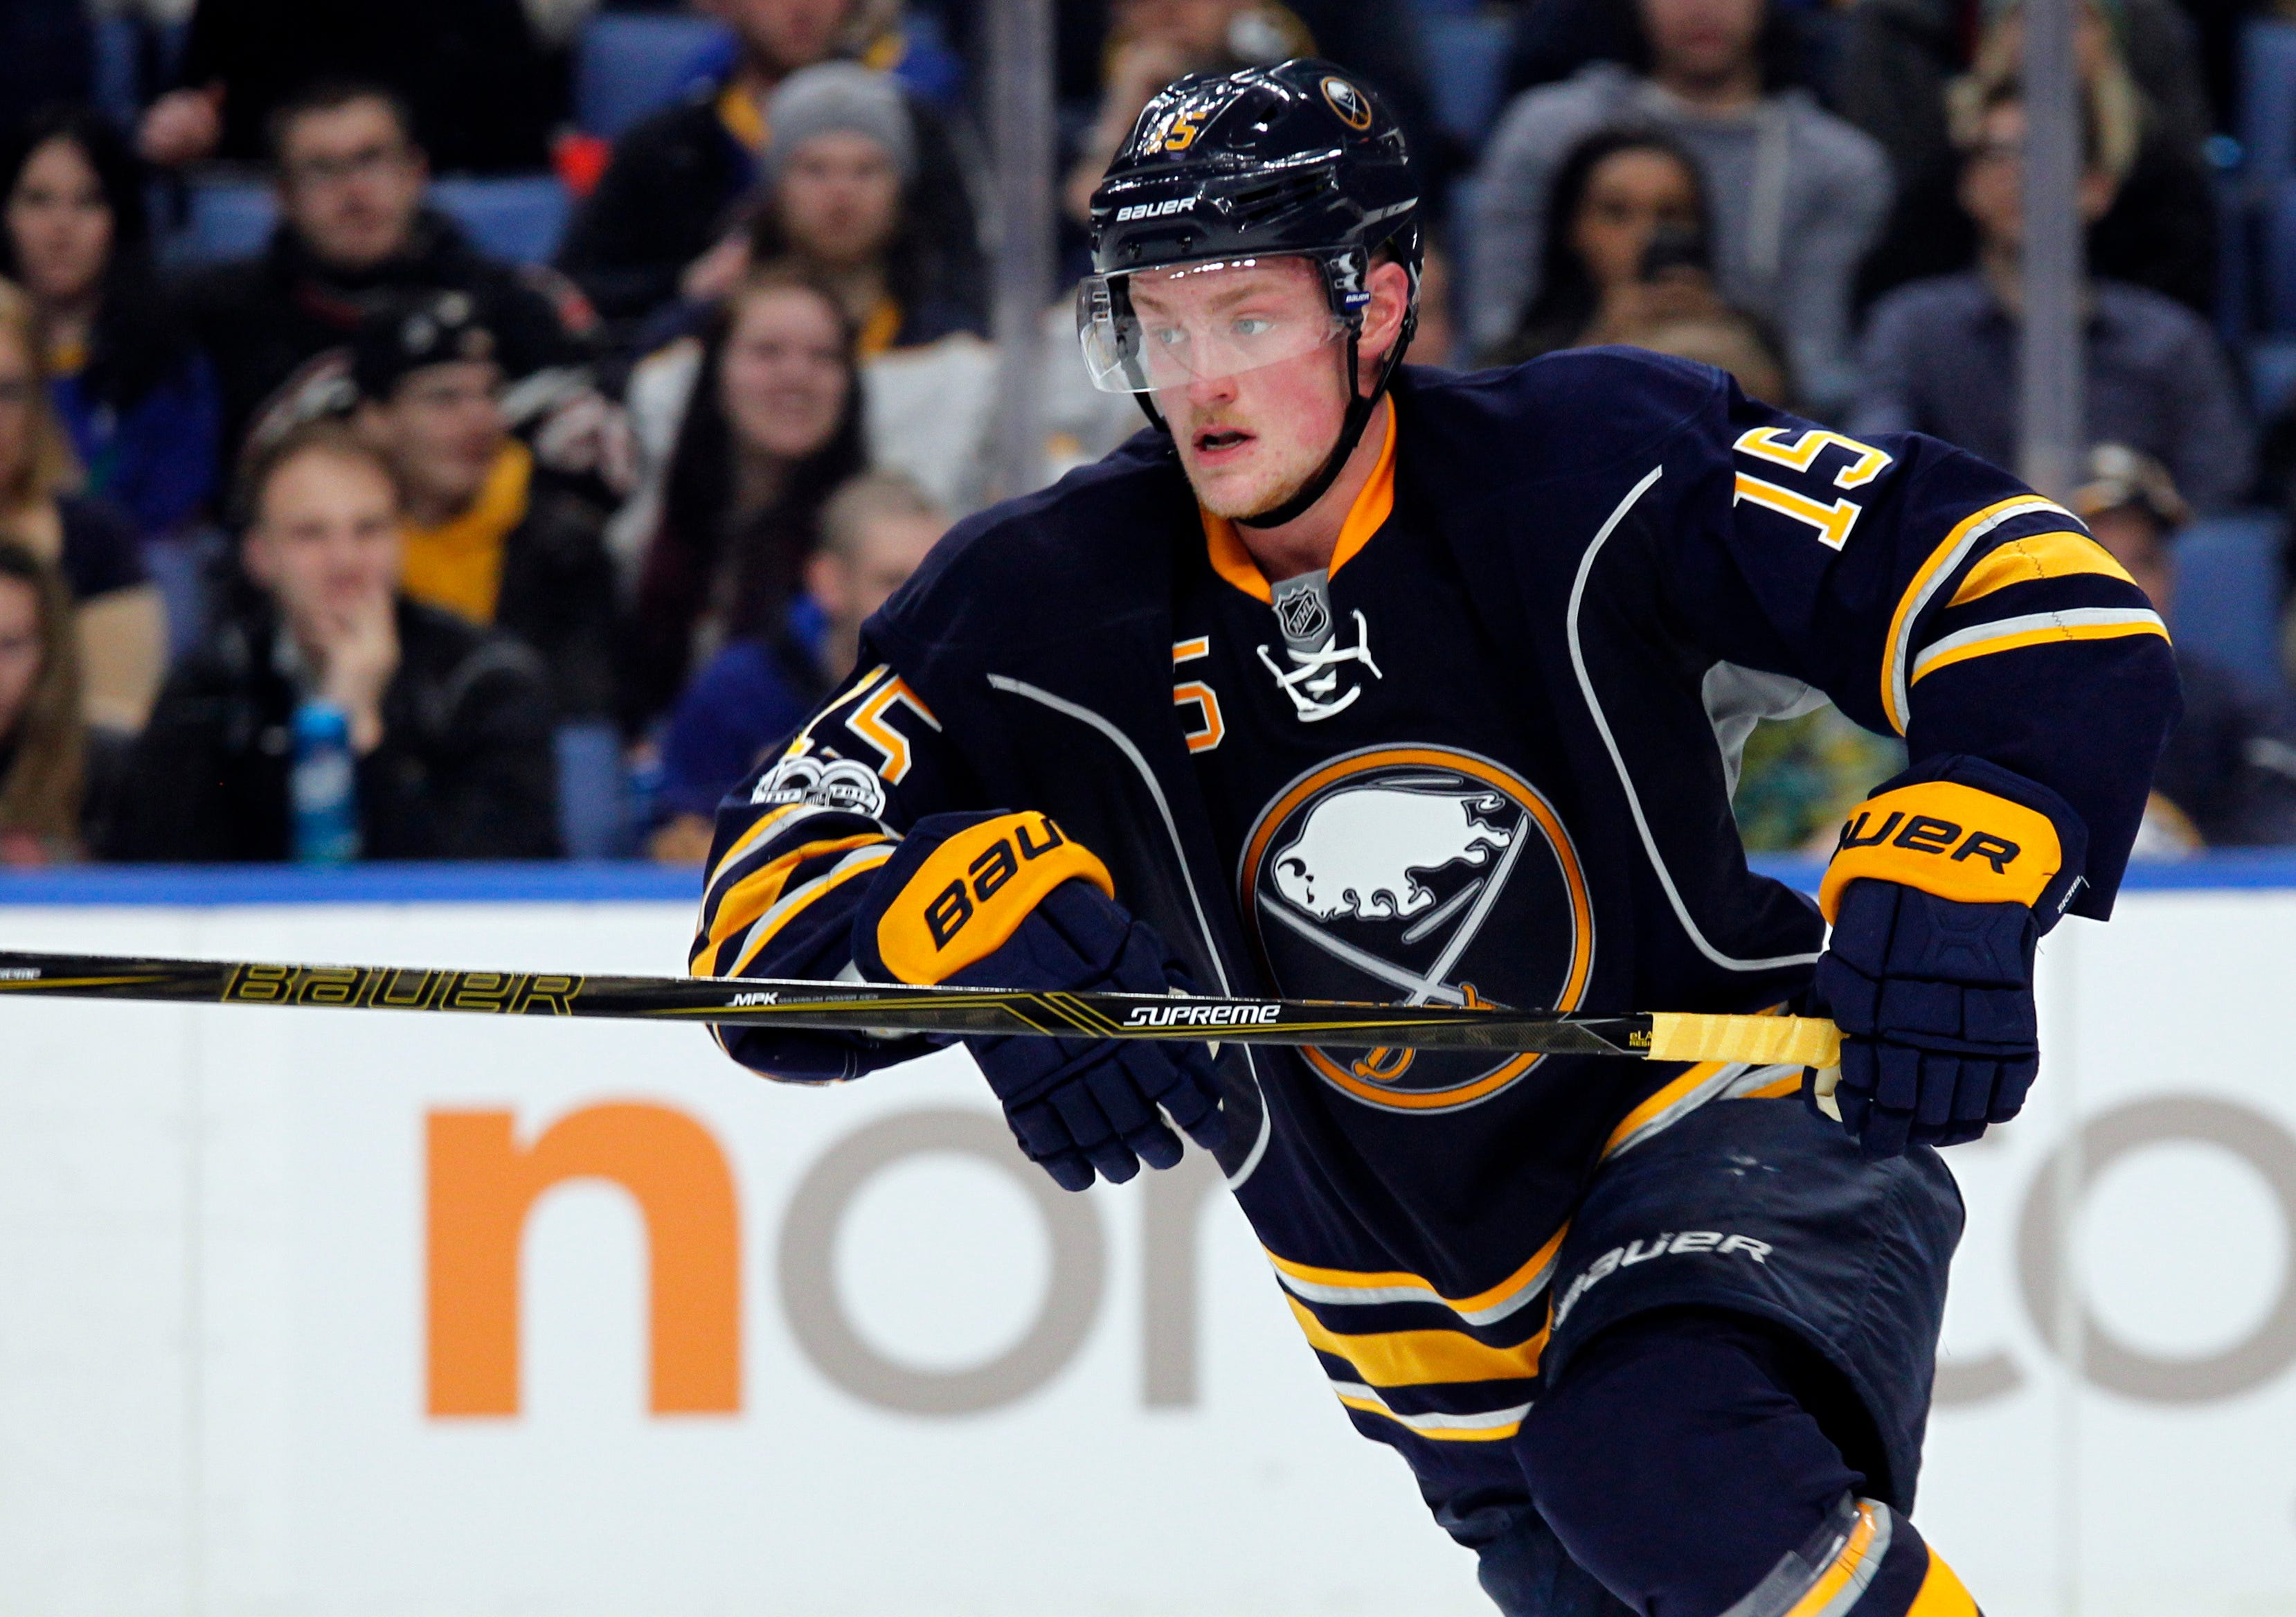 Sabres agree to sign Eichel to 8-year, $80 million contract